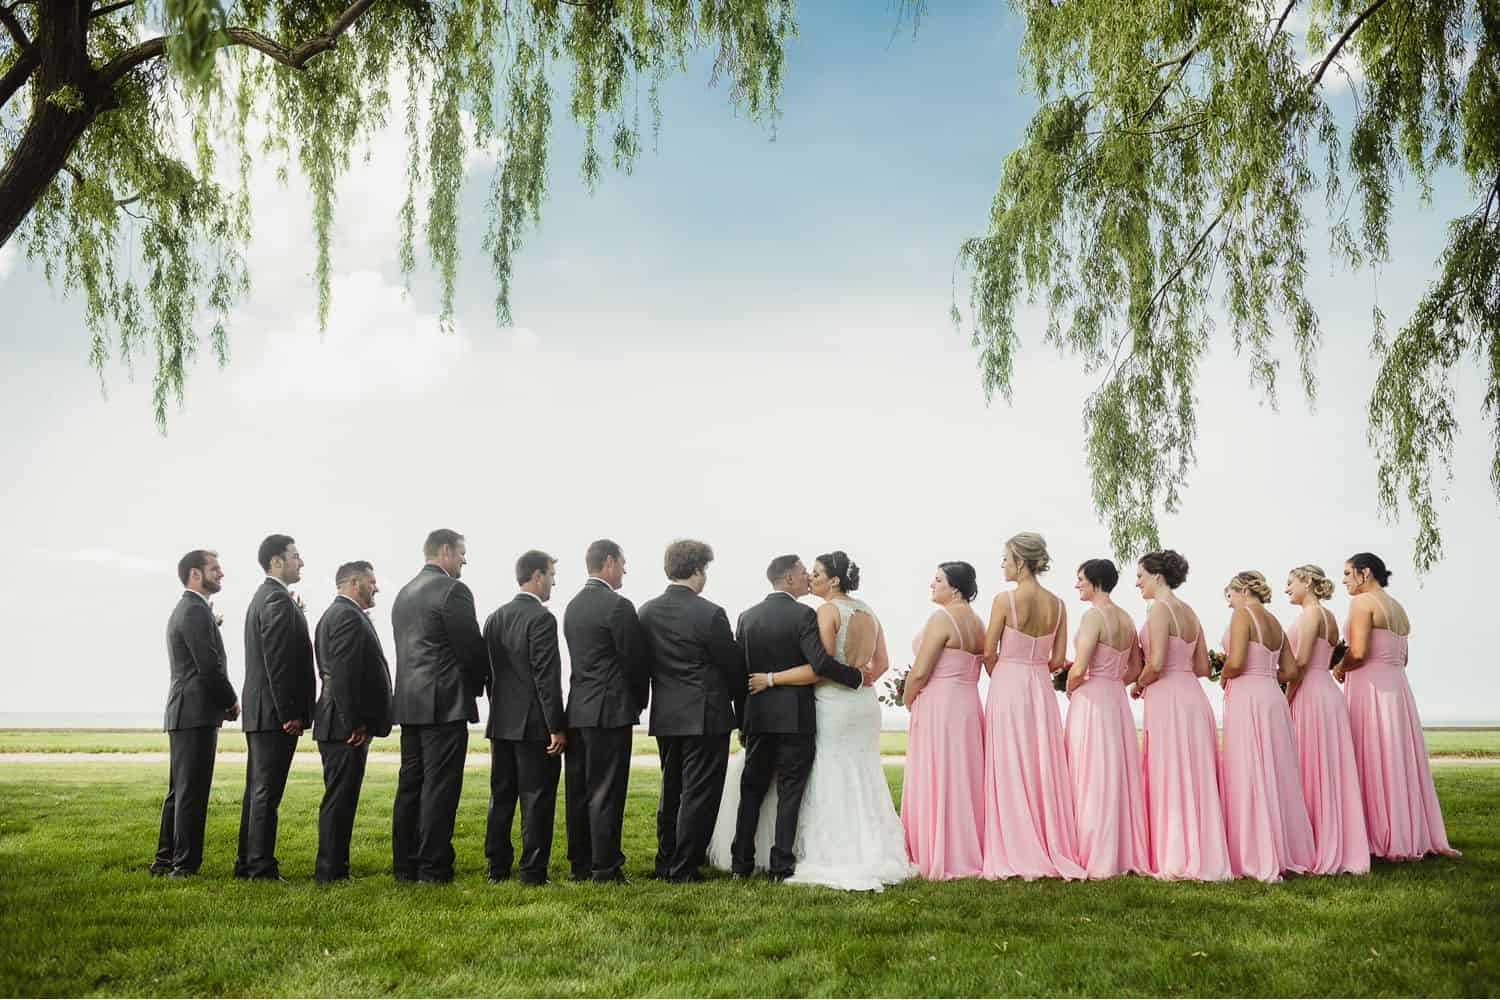 A wedding party stands beneath a willow tree with their backs to the camera as the bride and groom kiss in the middle.